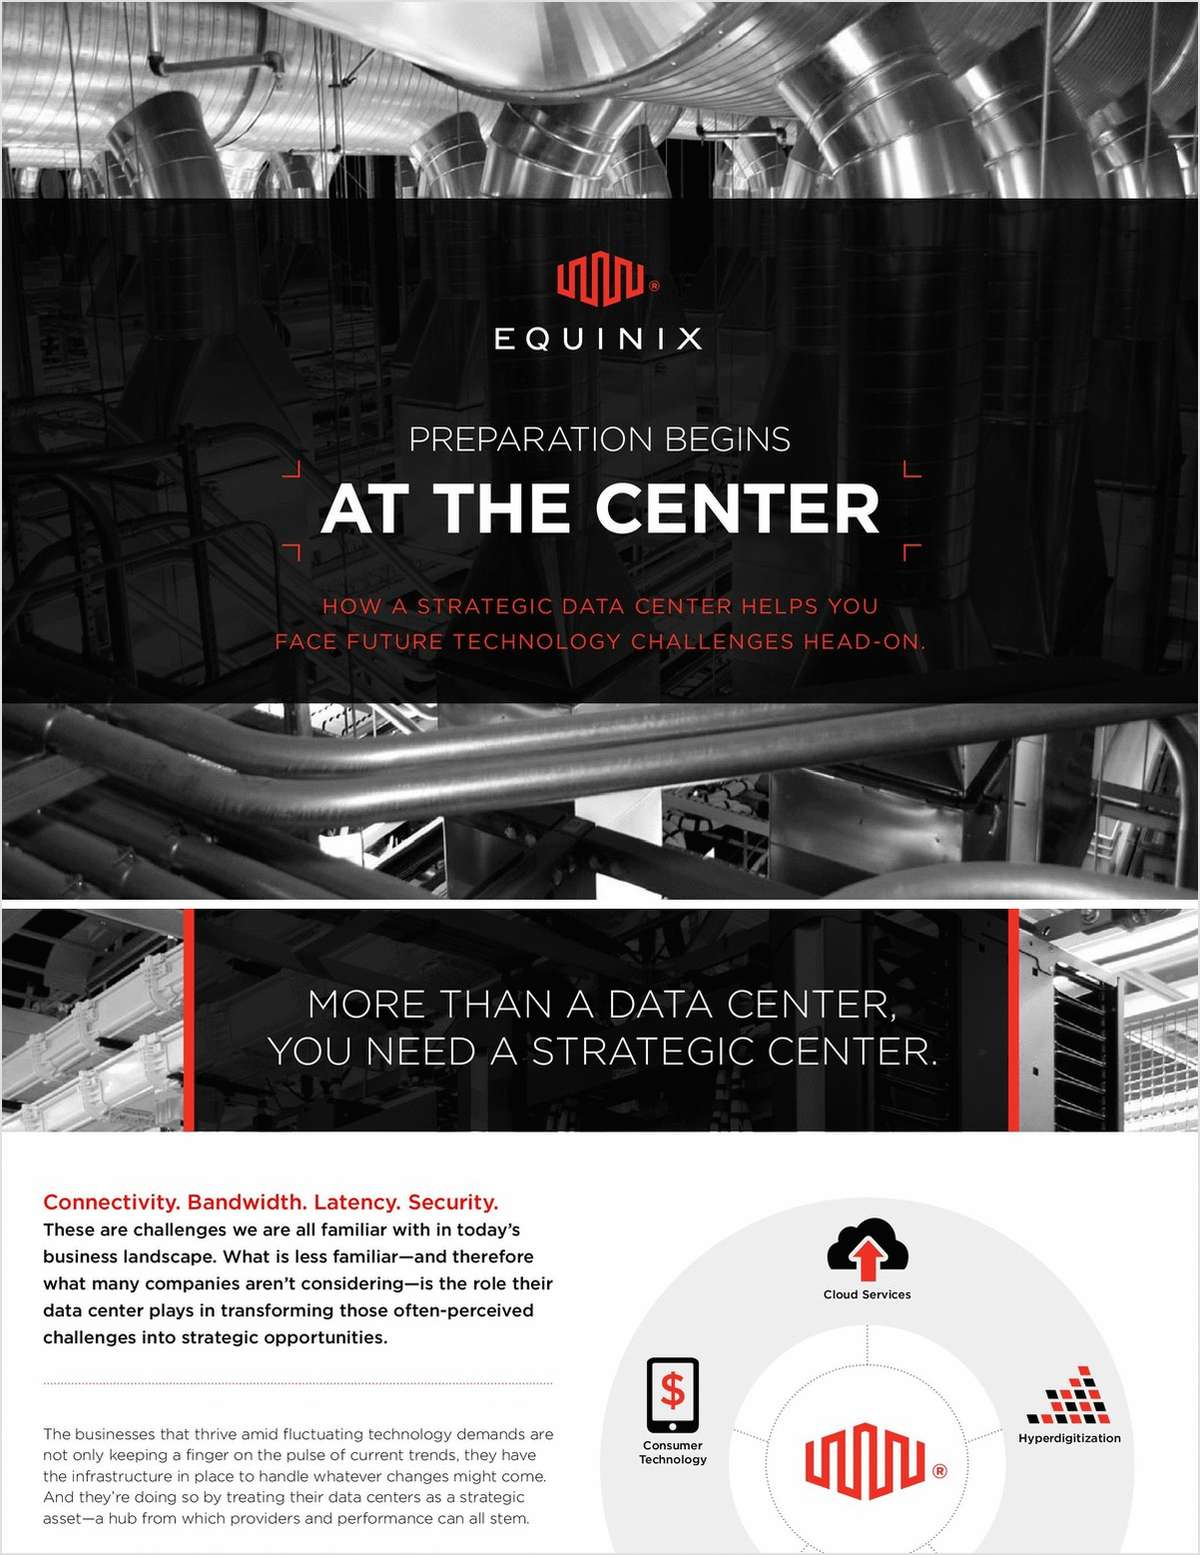 How a Strategic Data Center Helps You Face Future Technology Challenges Head-On